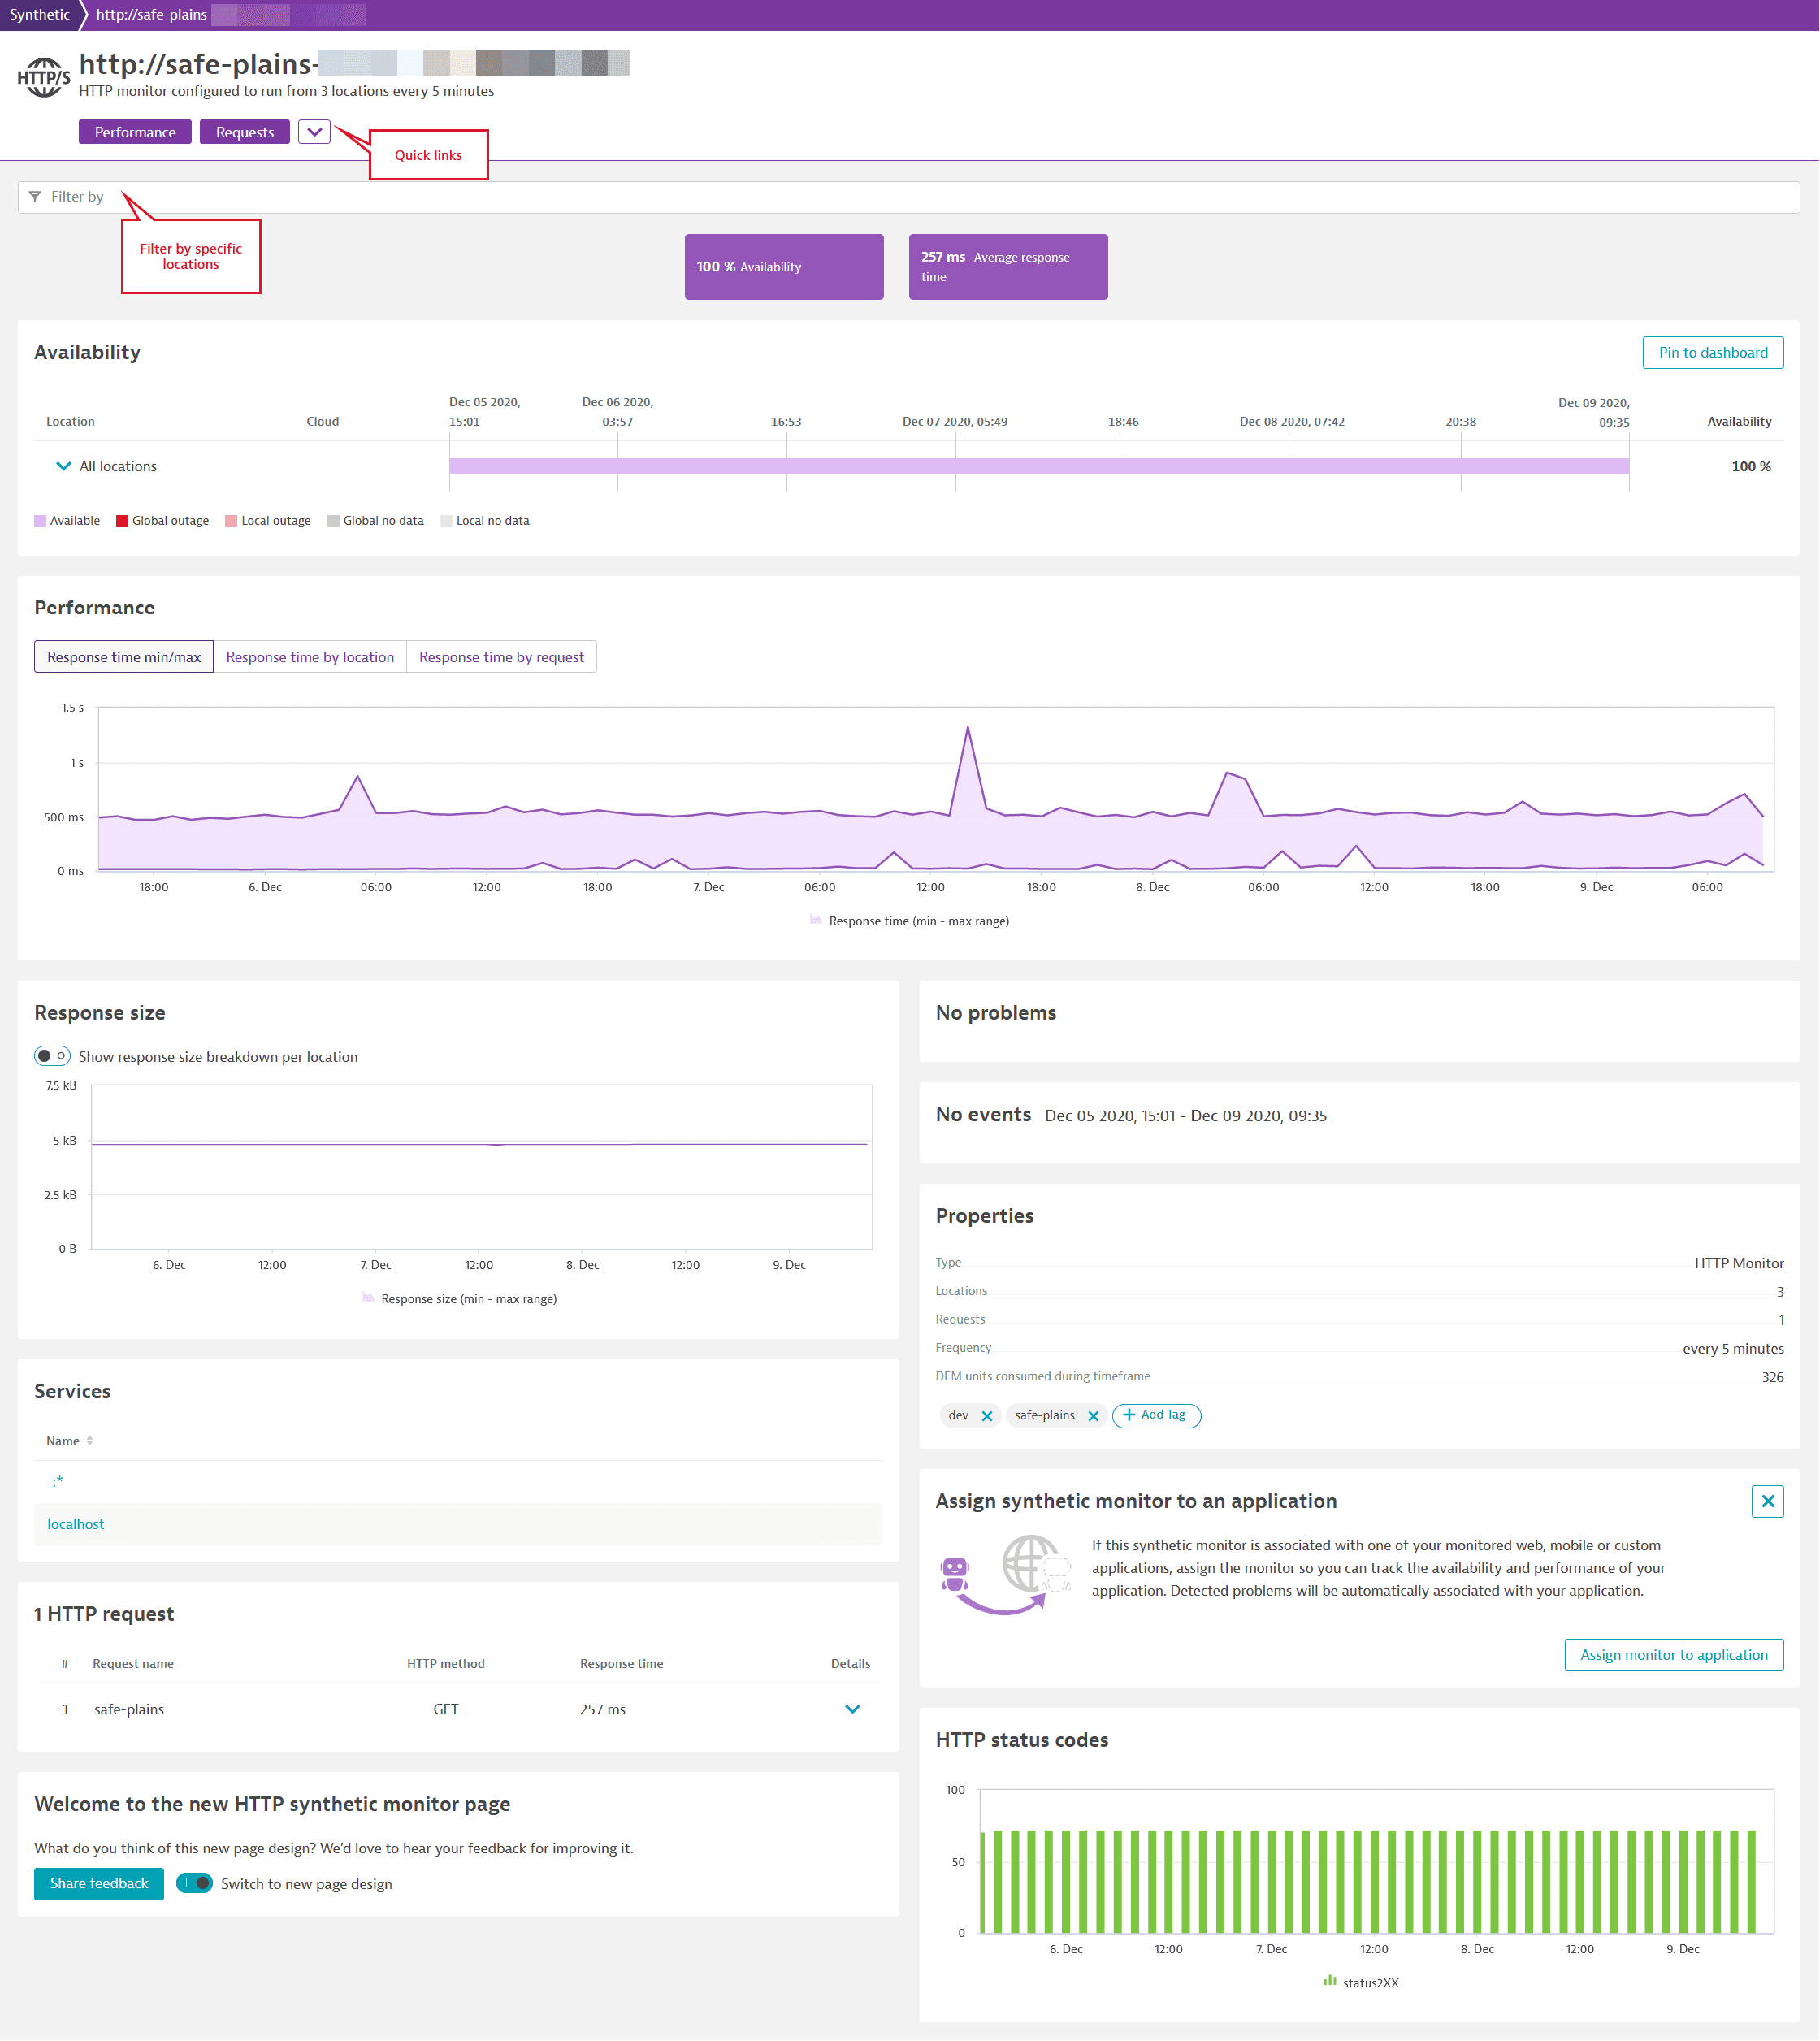 HTTP monitor details